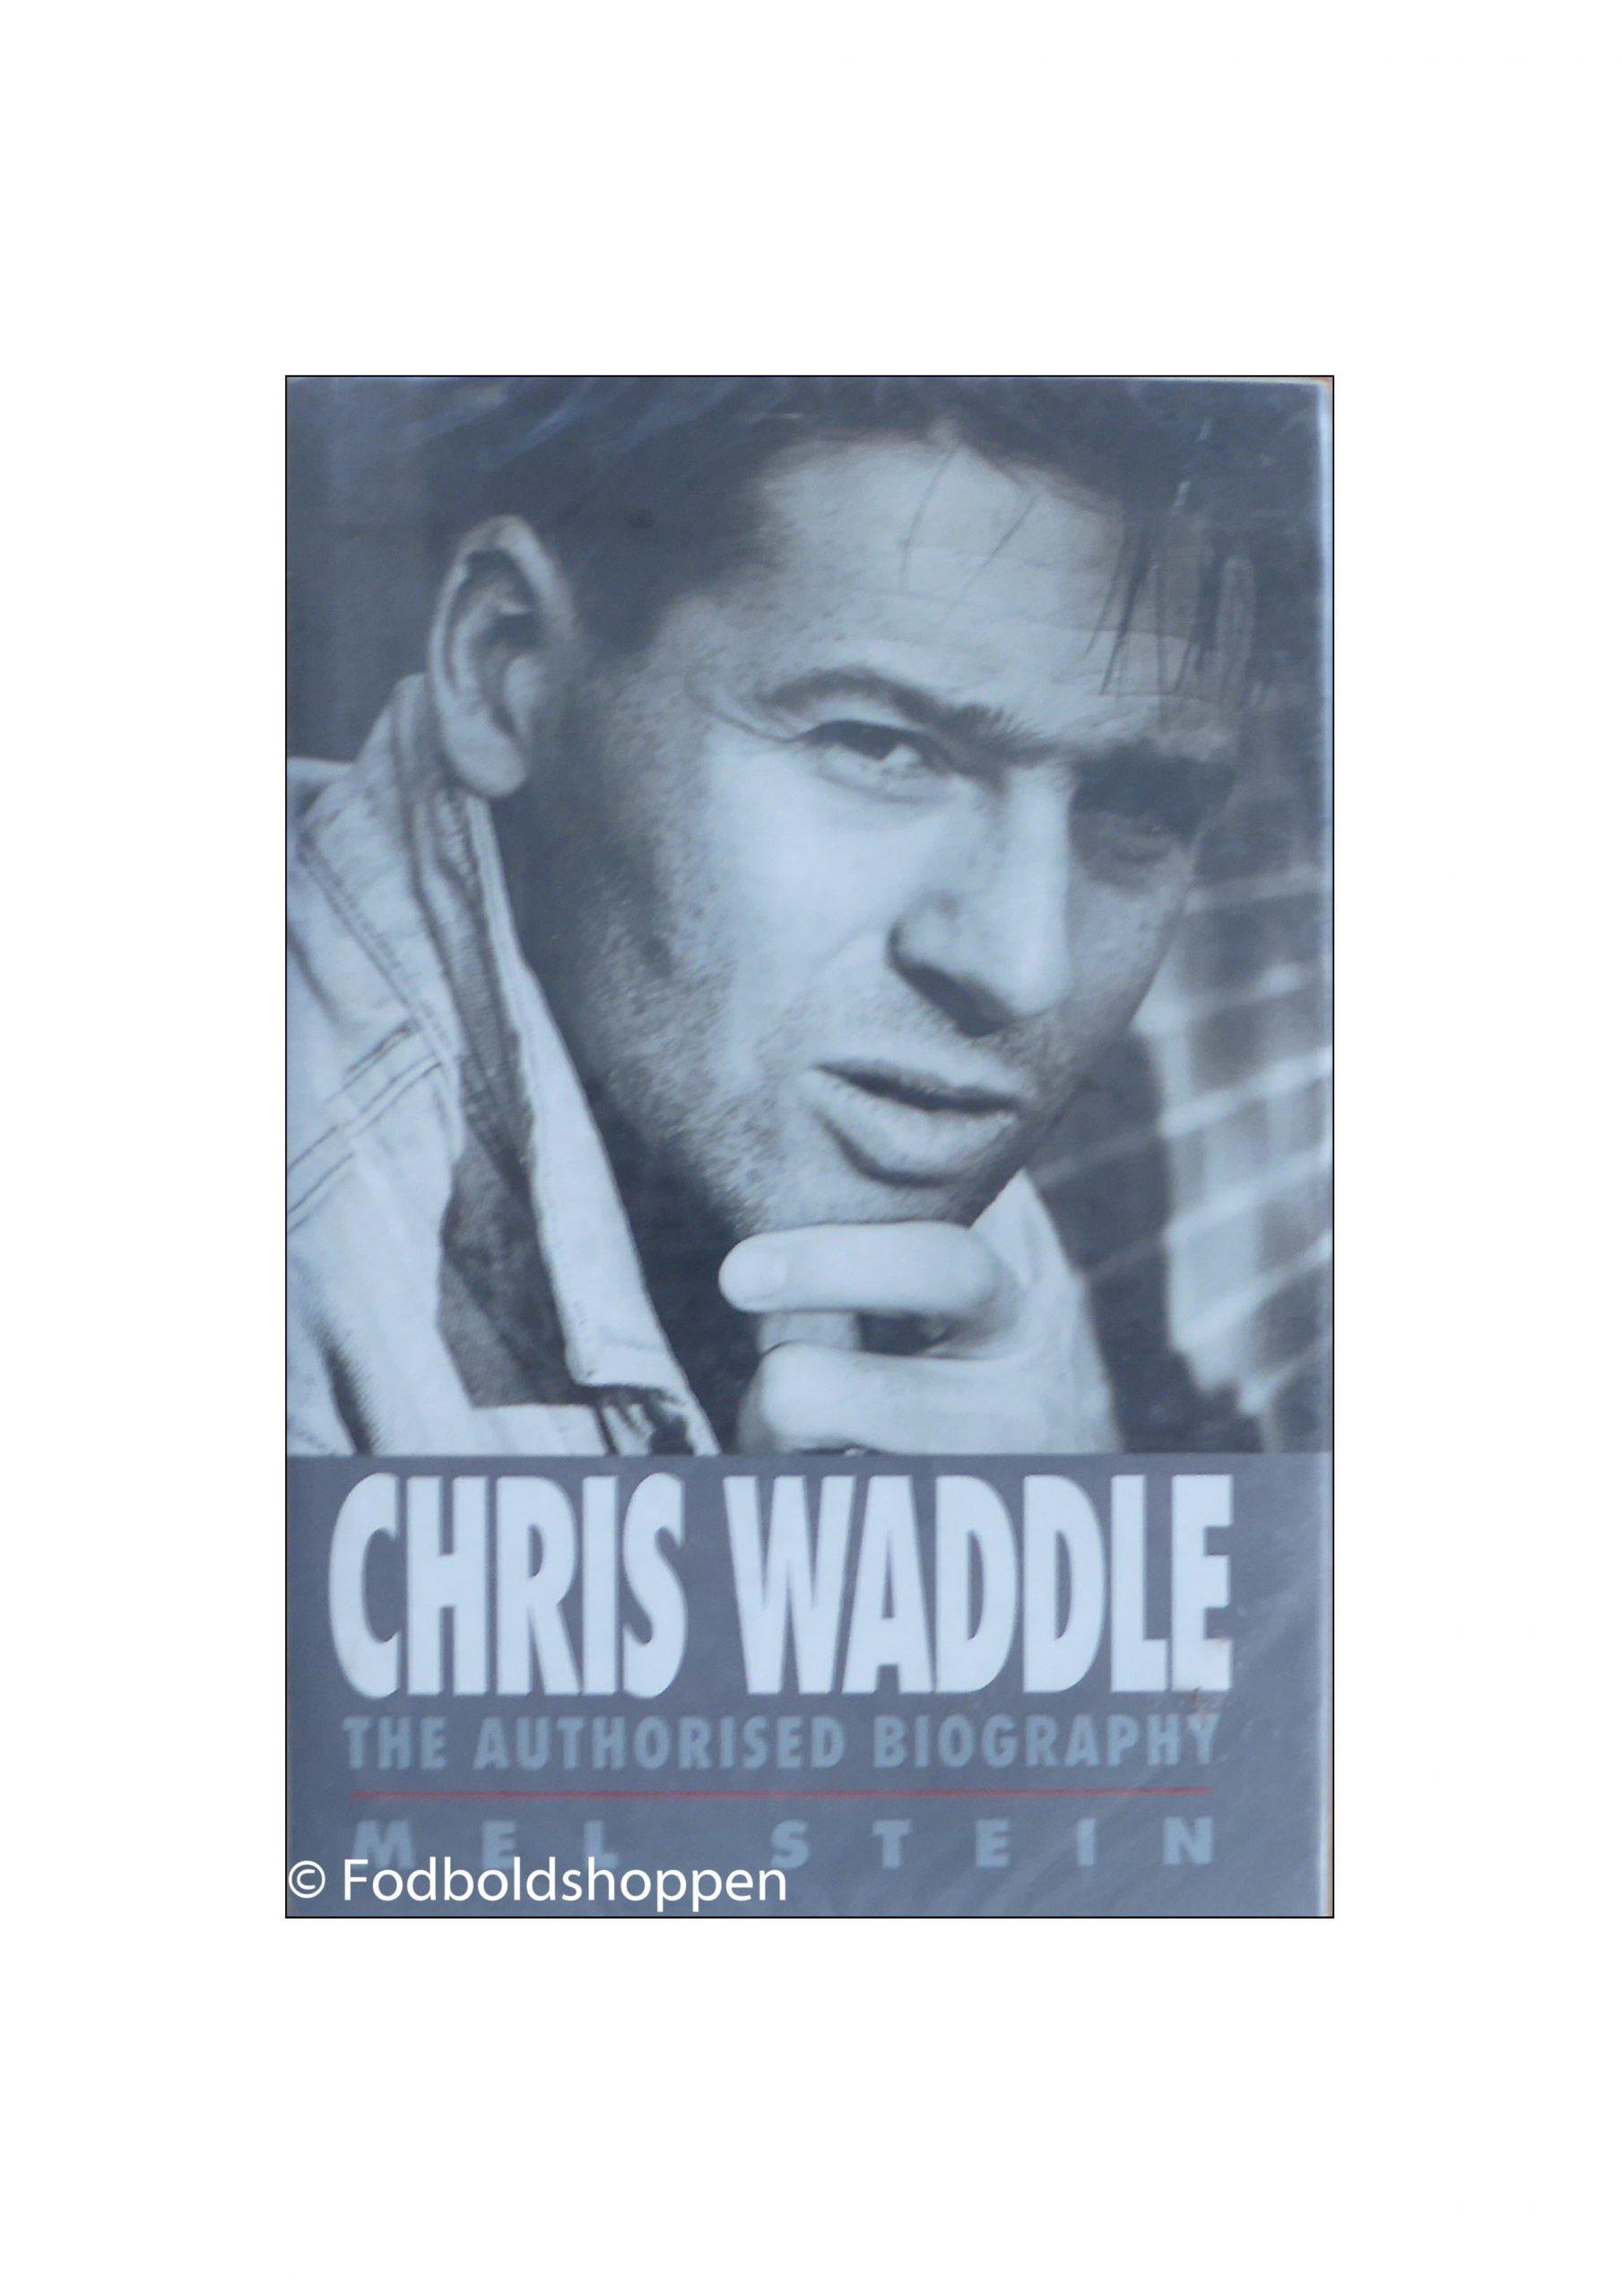 Chris Waddle - The Authorised Biography